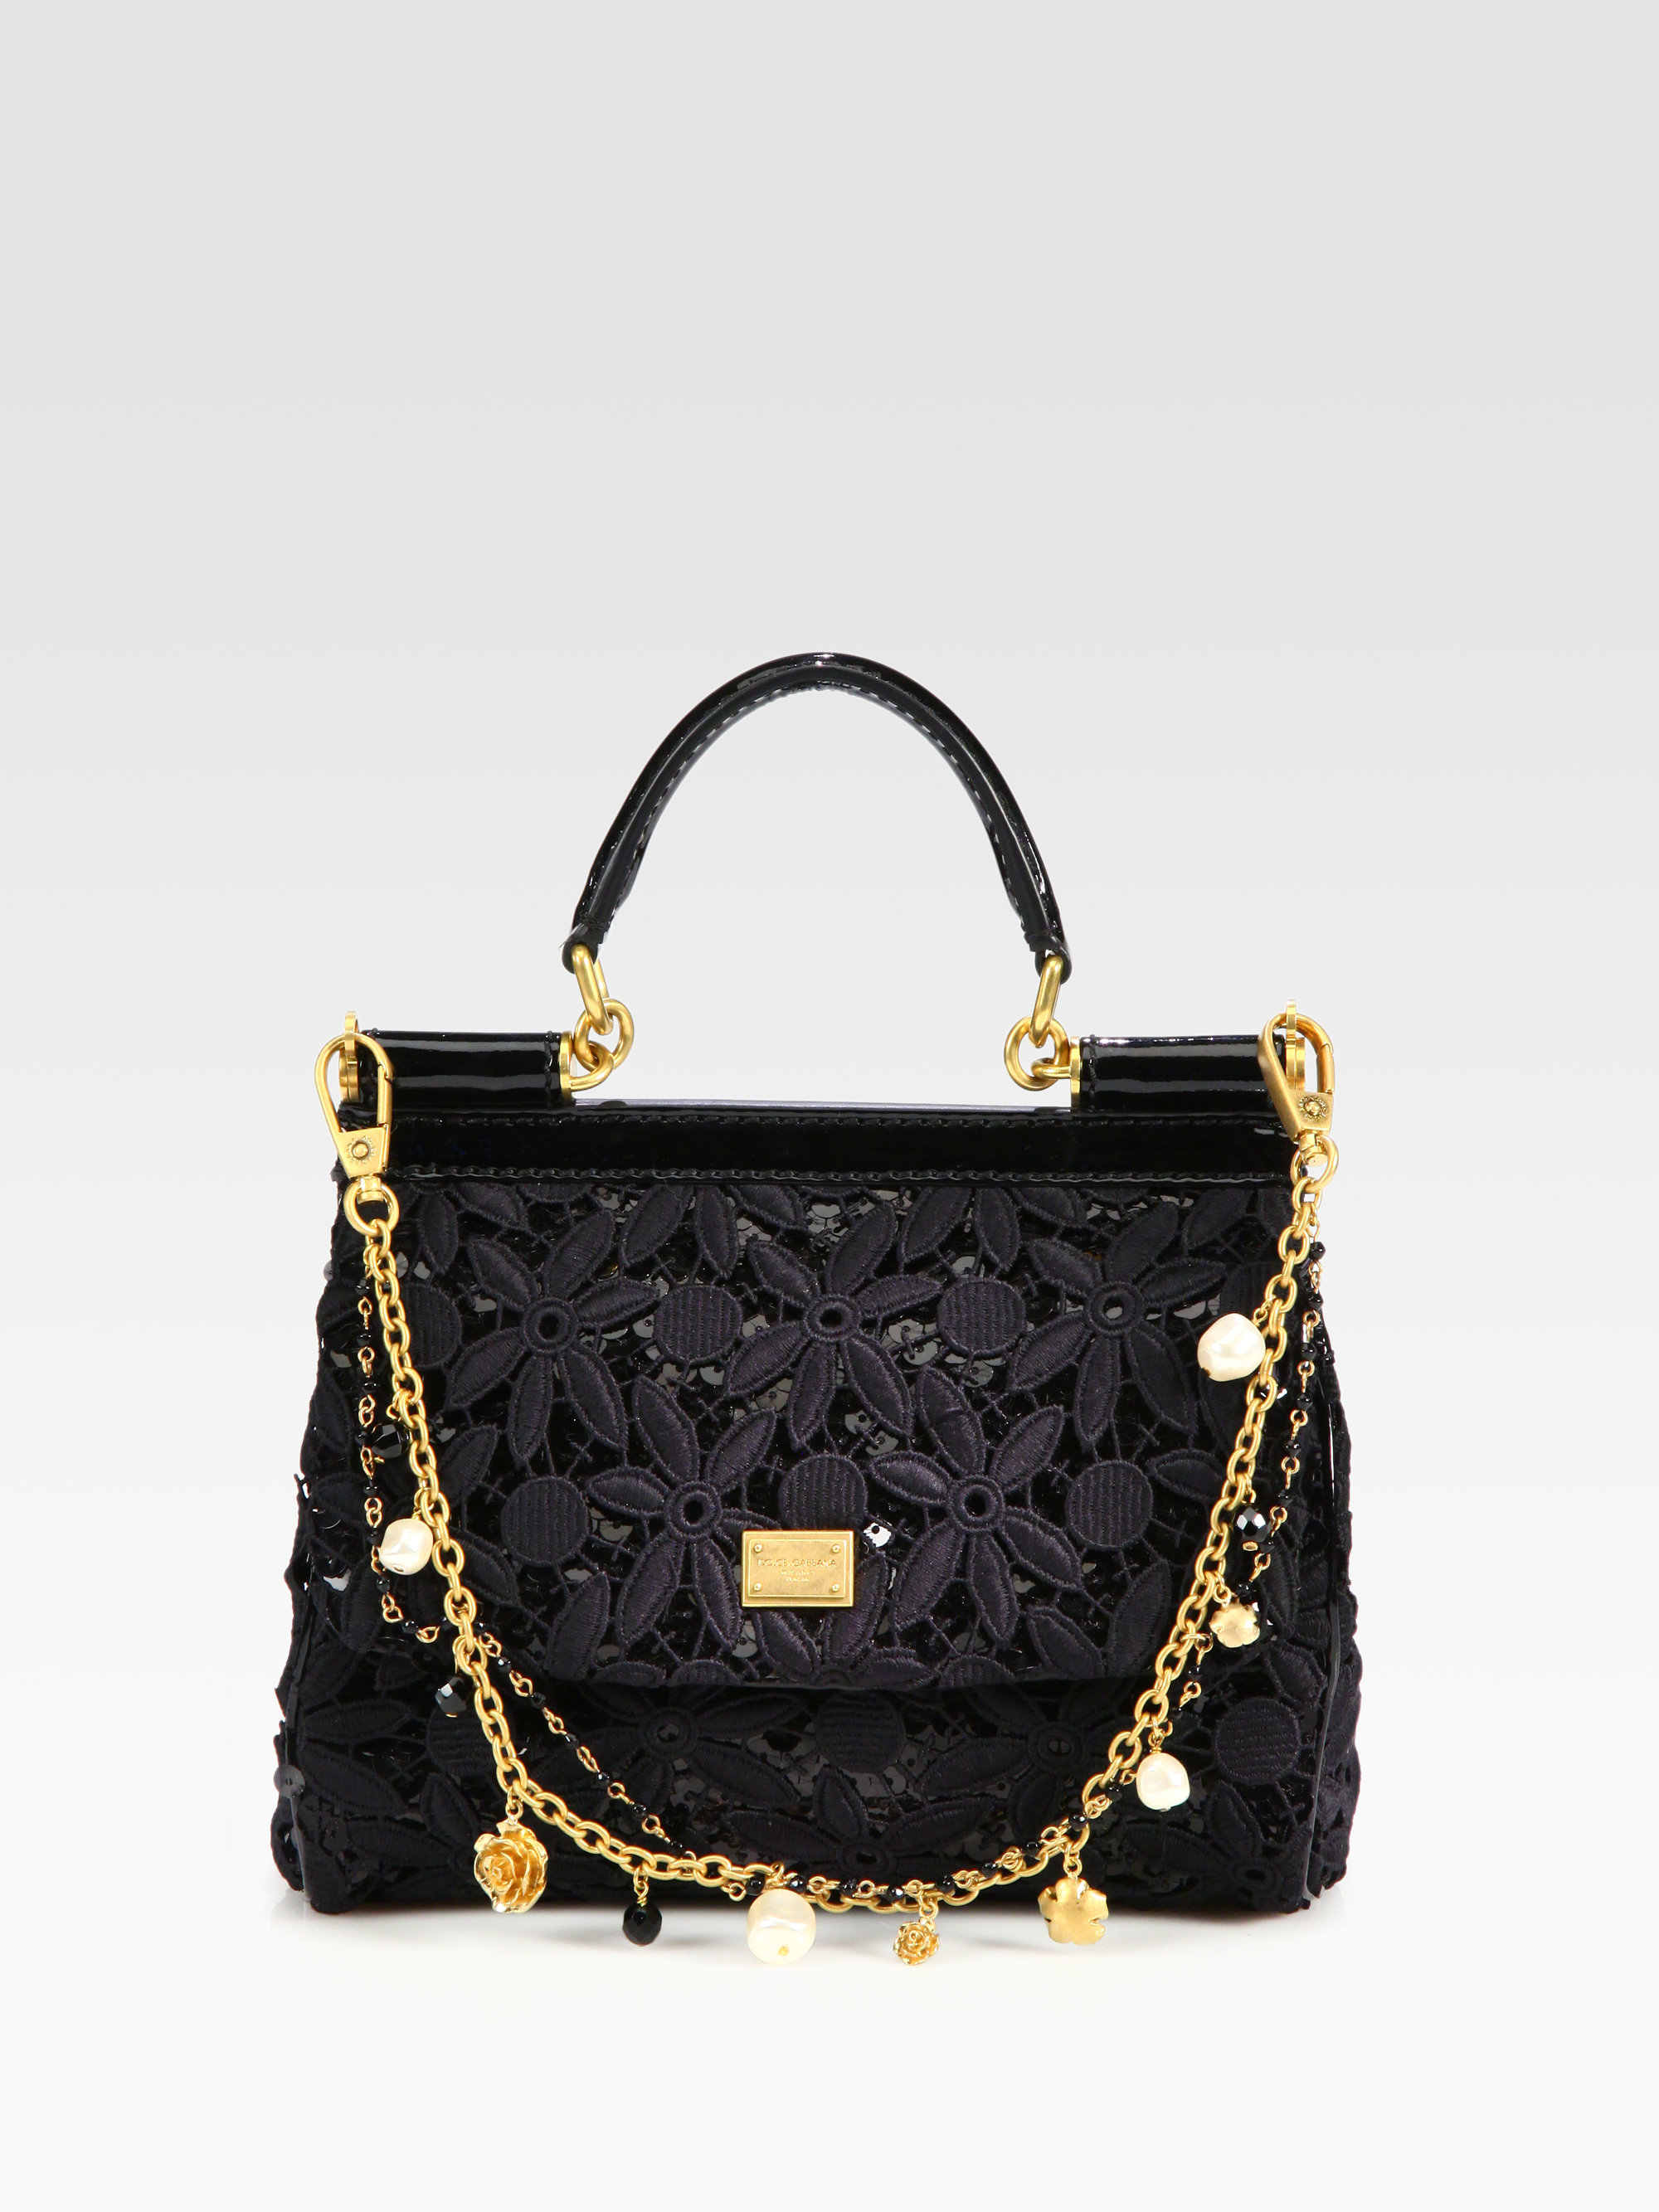 7b019f8a17dd Lyst - Dolce   Gabbana Mini Miss Sicily Floral Lace Sequins Satchel ...